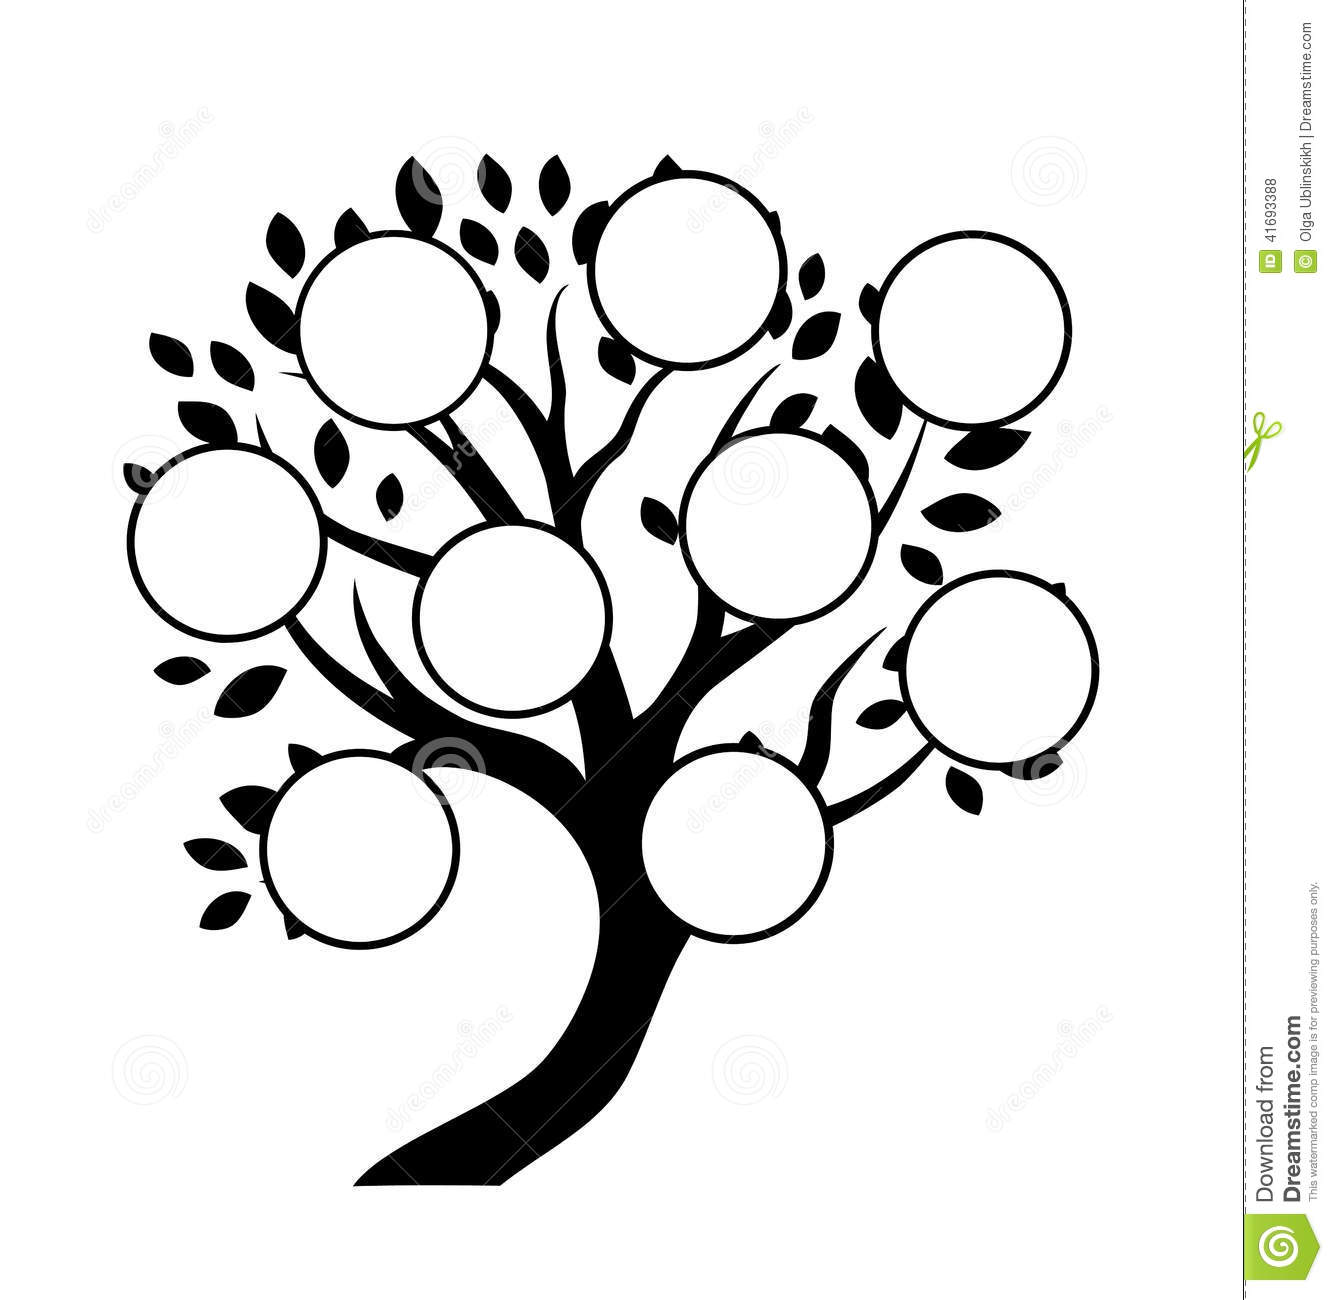 Decorative Family Tree Design Stock Vector Illustration Of Family